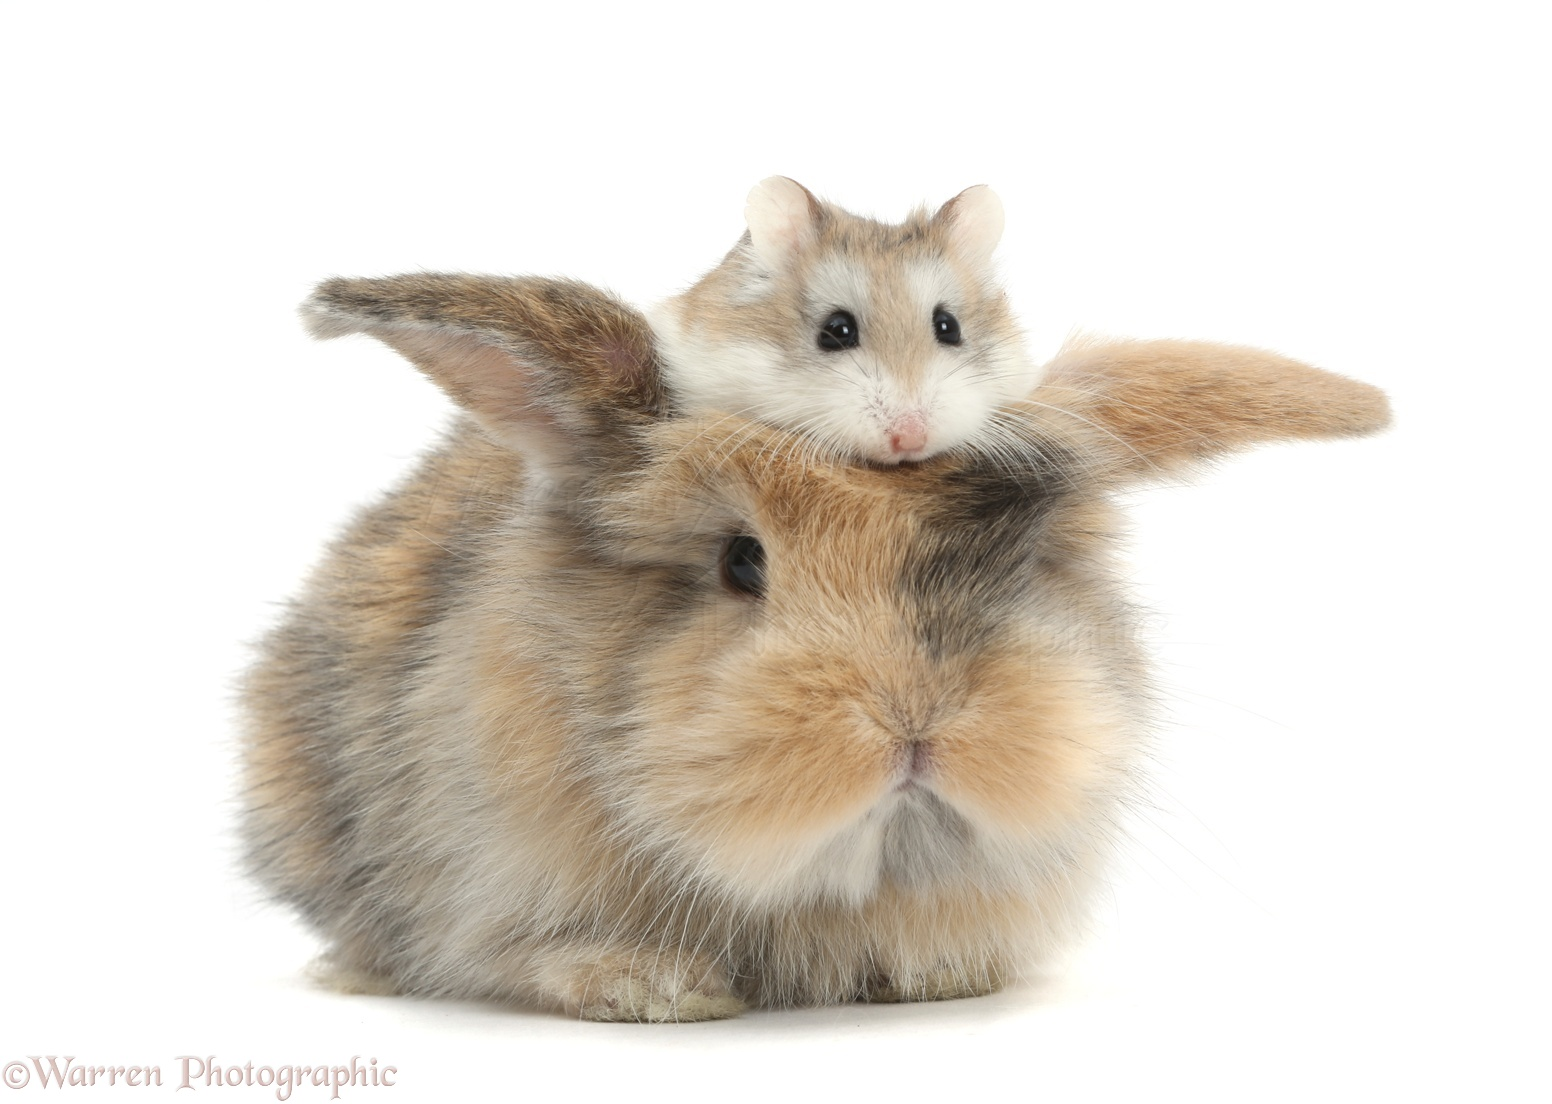 Cute Pets Pictures, Bunny and Roborovski Hamster photo ... - photo#41